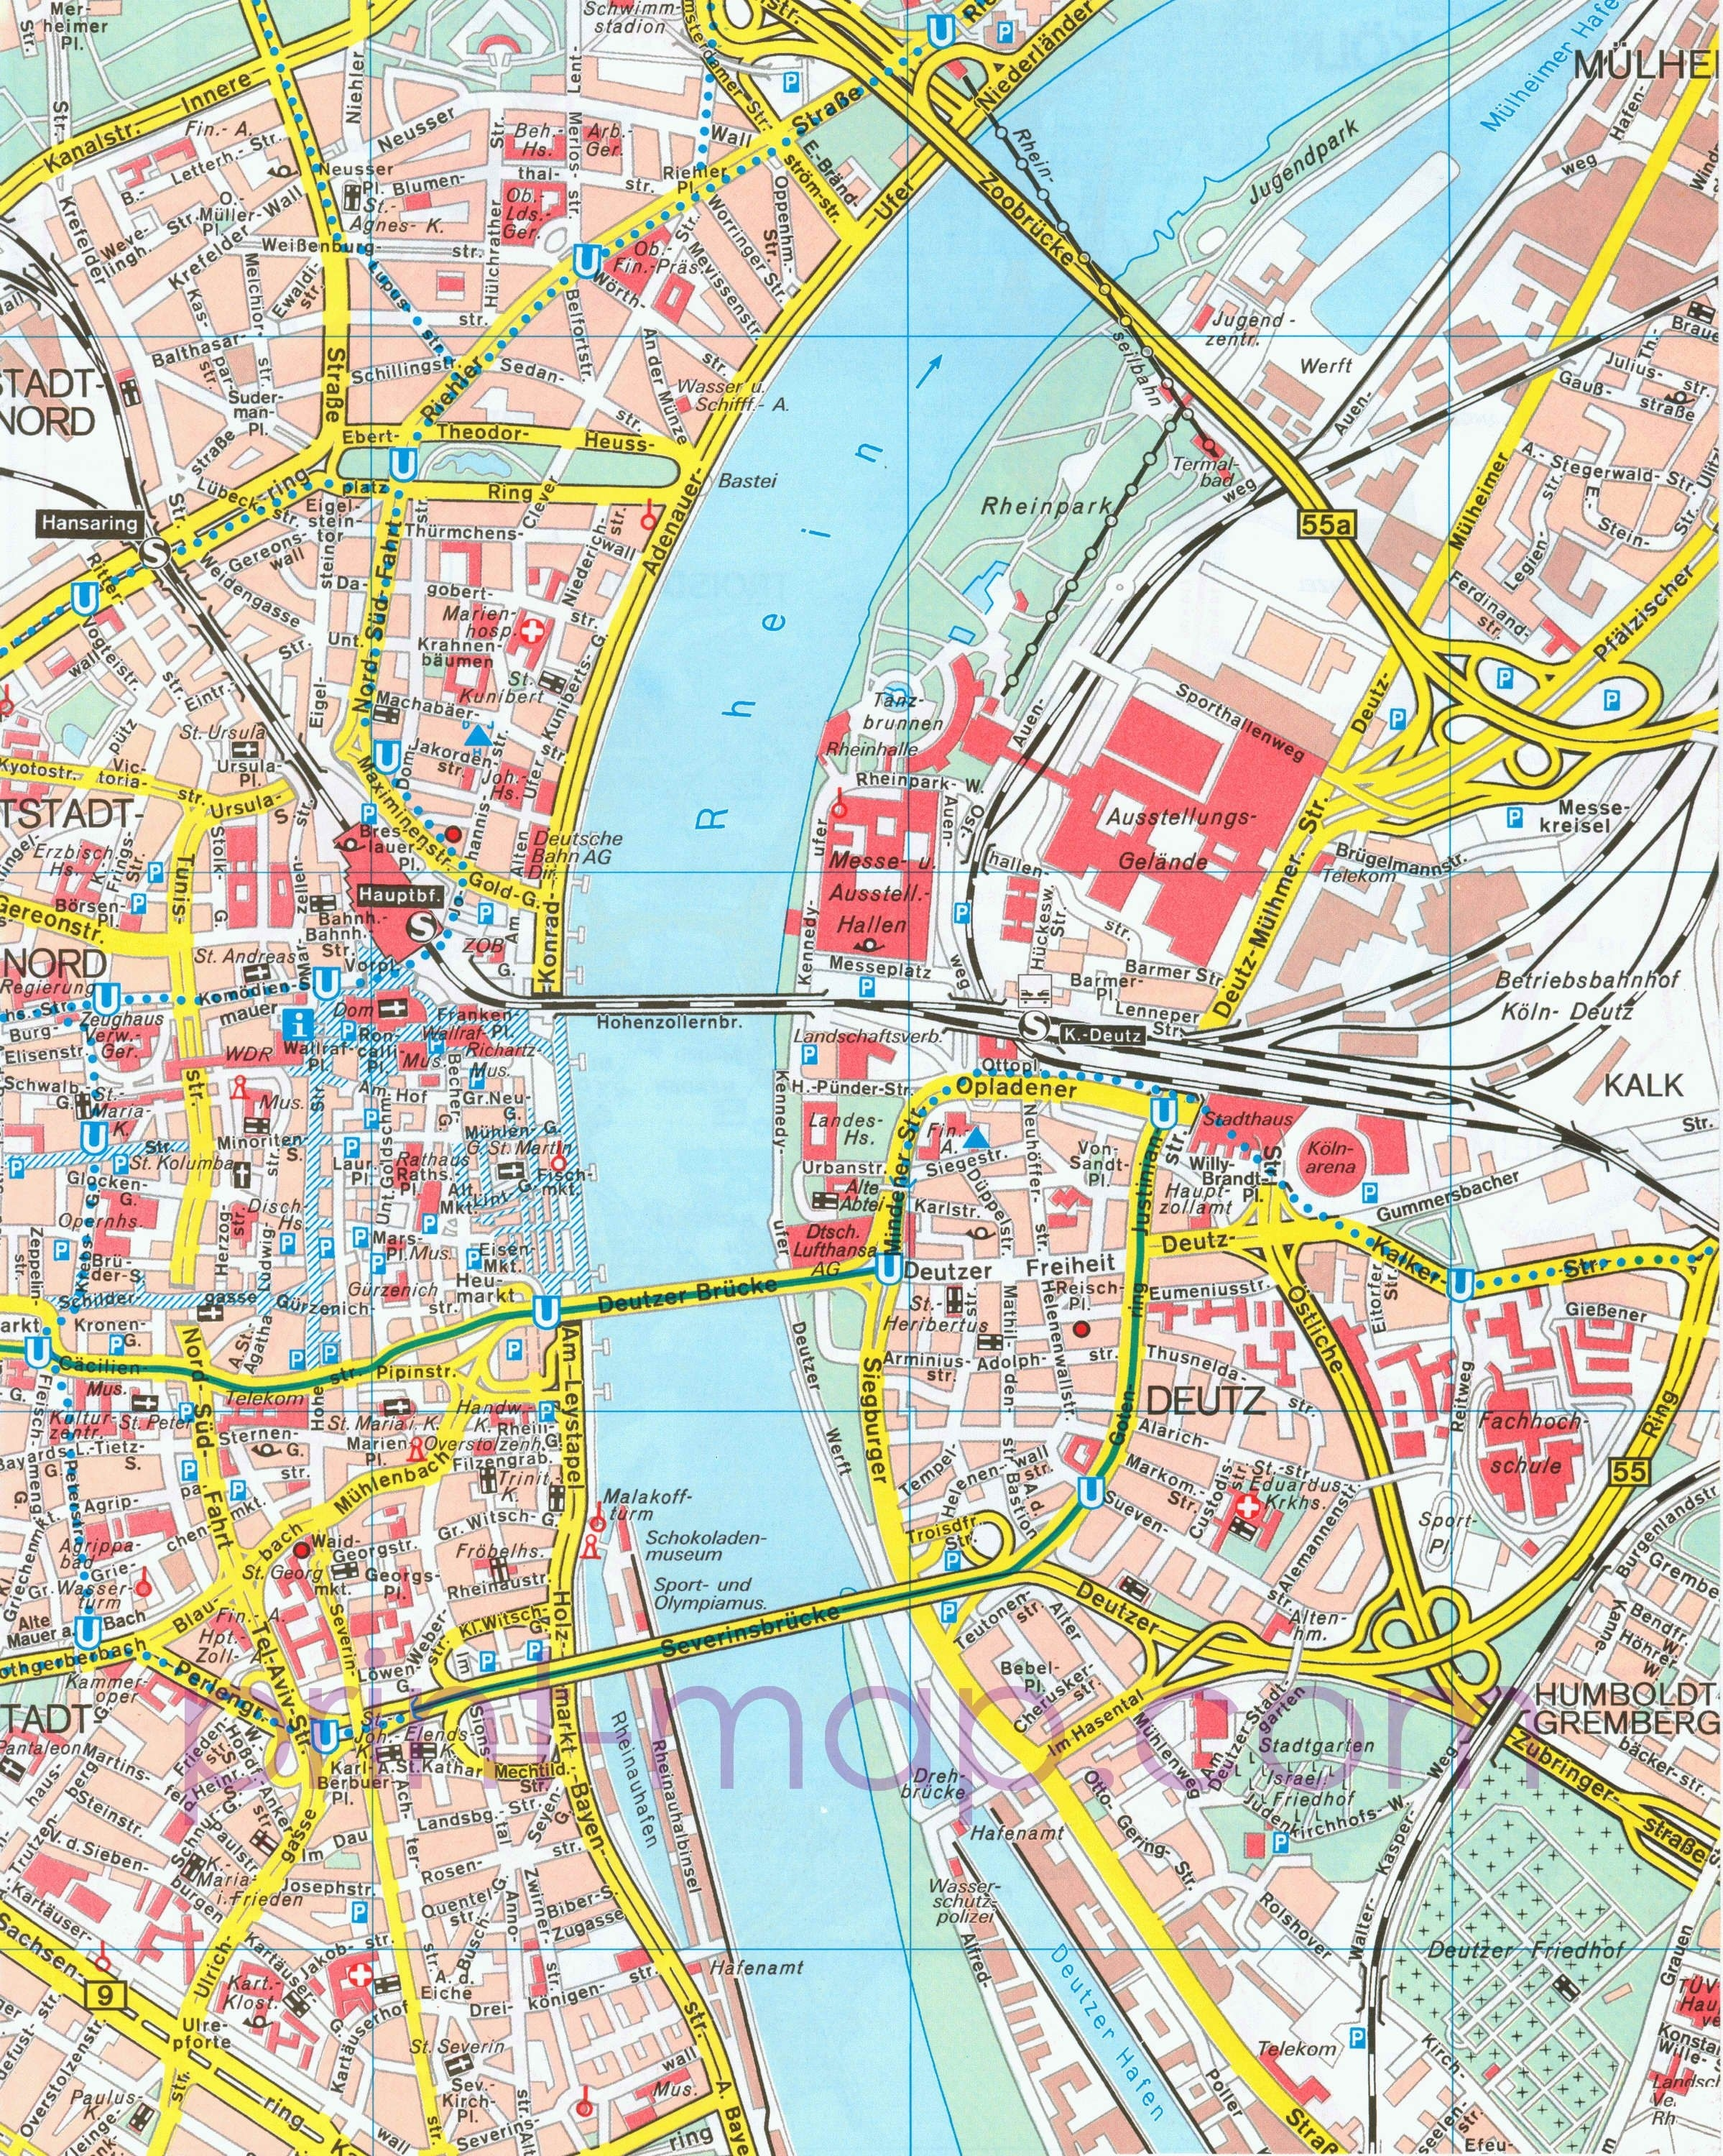 Pdf Map Of Cologne Germany | Maps, Maps, Maps, Any And All, Also with regard to Street Map Cologne Germany